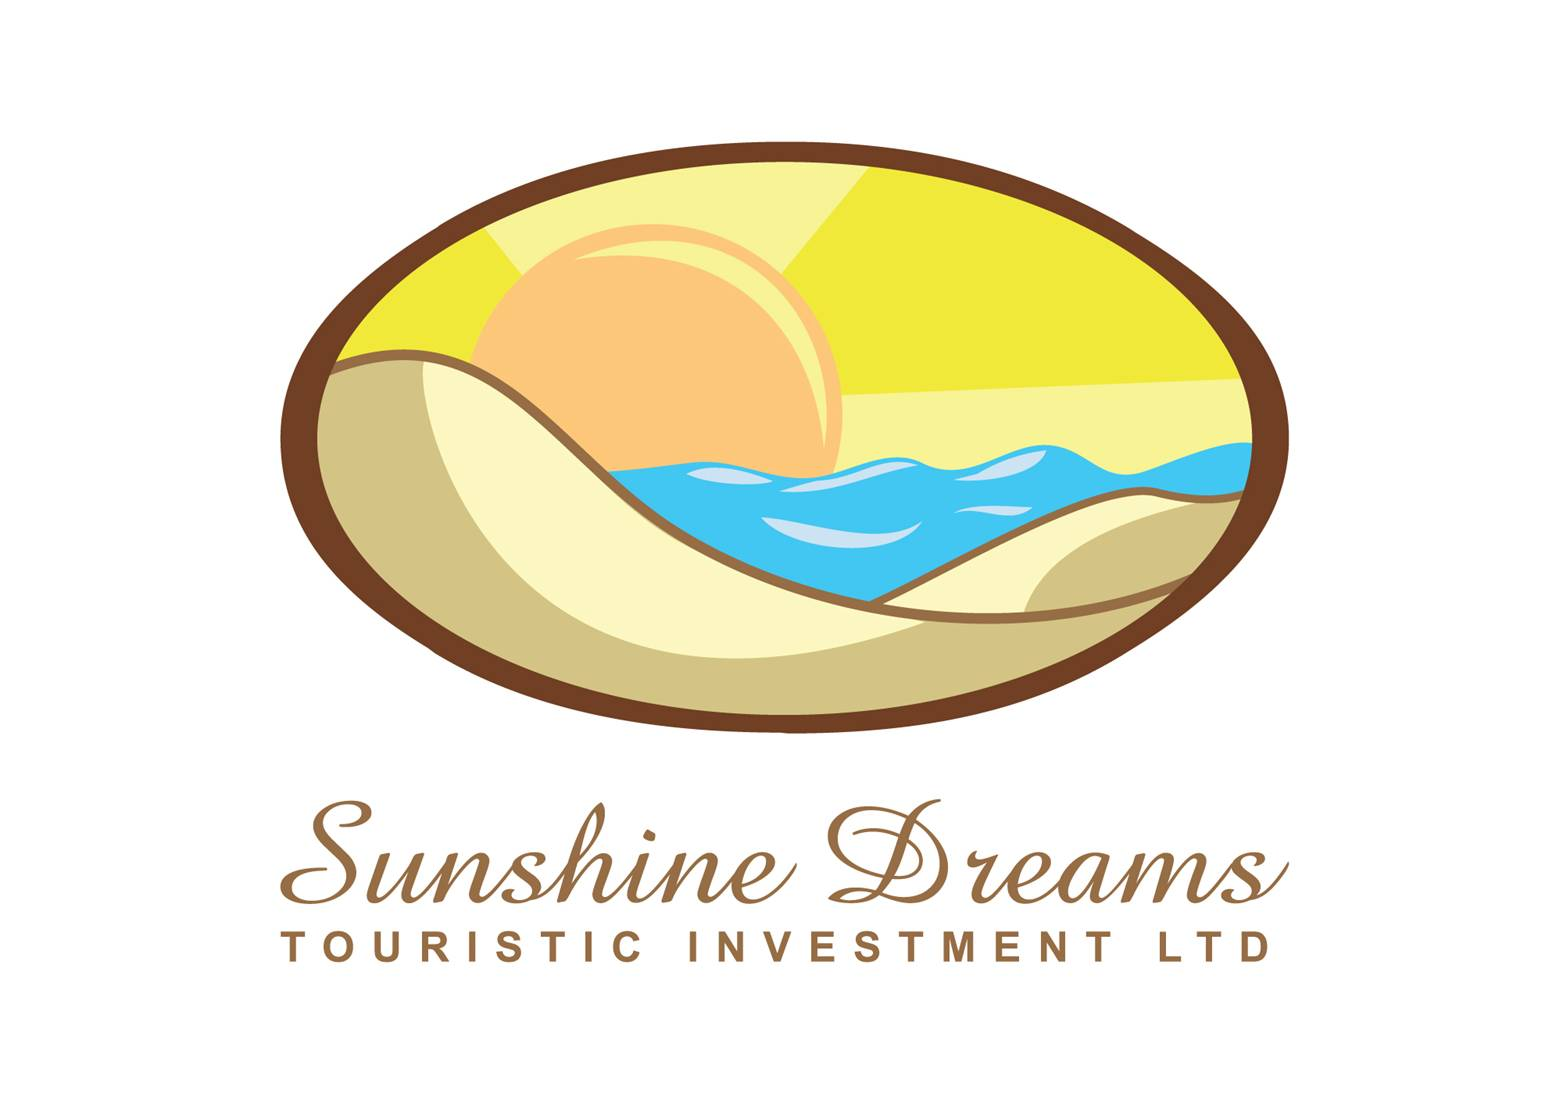 Sunshine Dreams Touristic Investment Ltd.